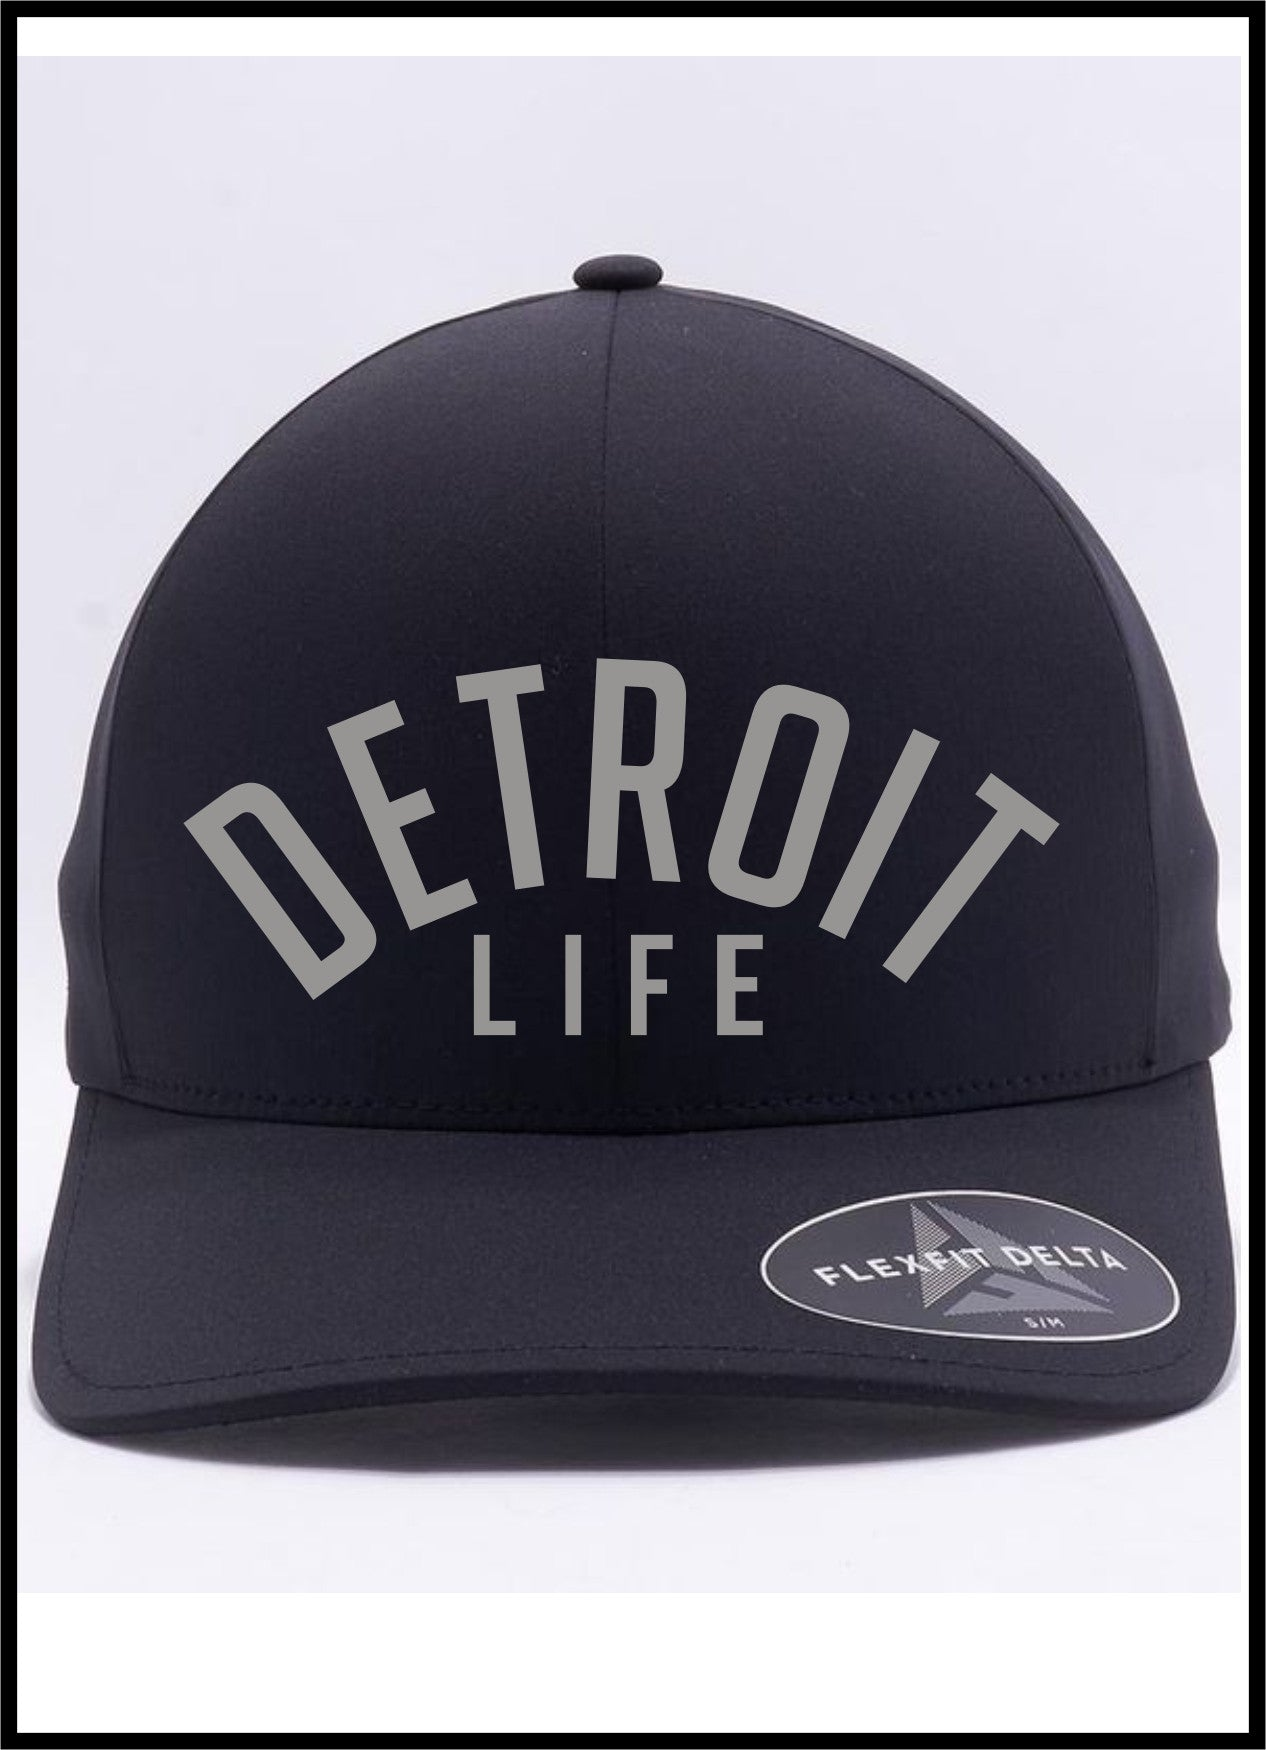 DETROIT LIFE FITTED HAT, DETROIT LIFE HAT, DETROIT LIFE WATERPROOF HAT